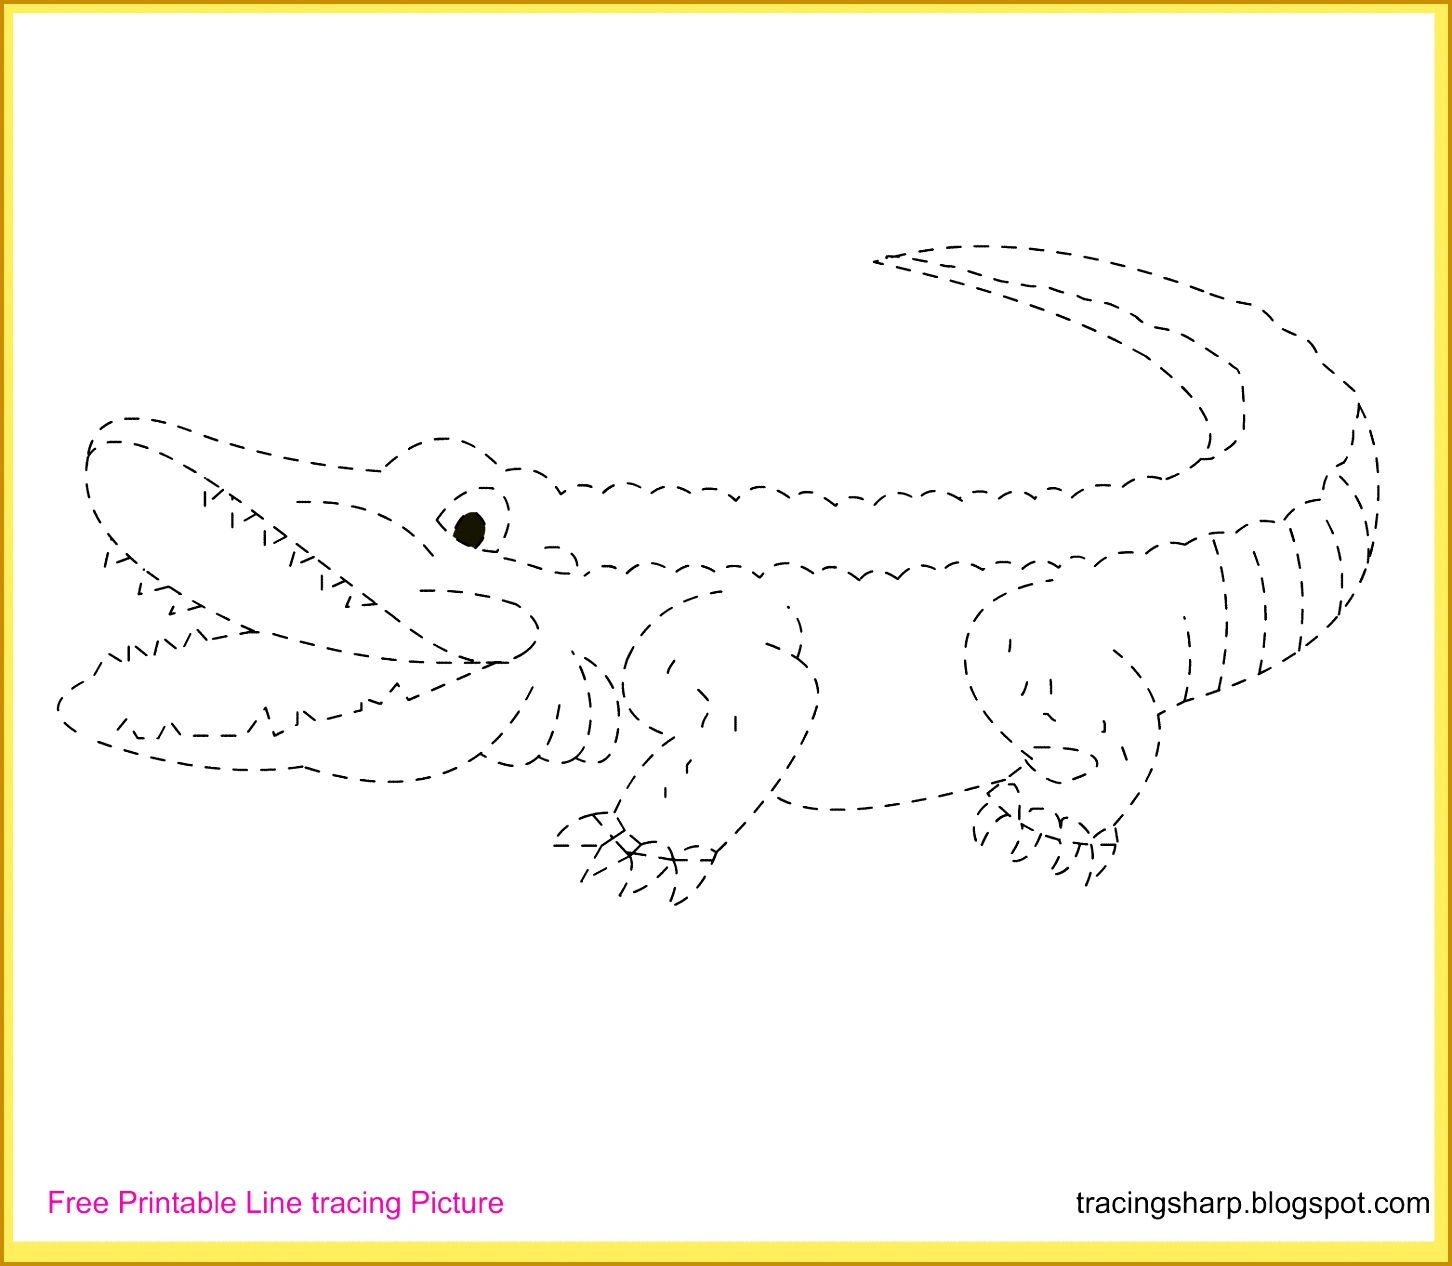 alligator line tracing picture 12661452